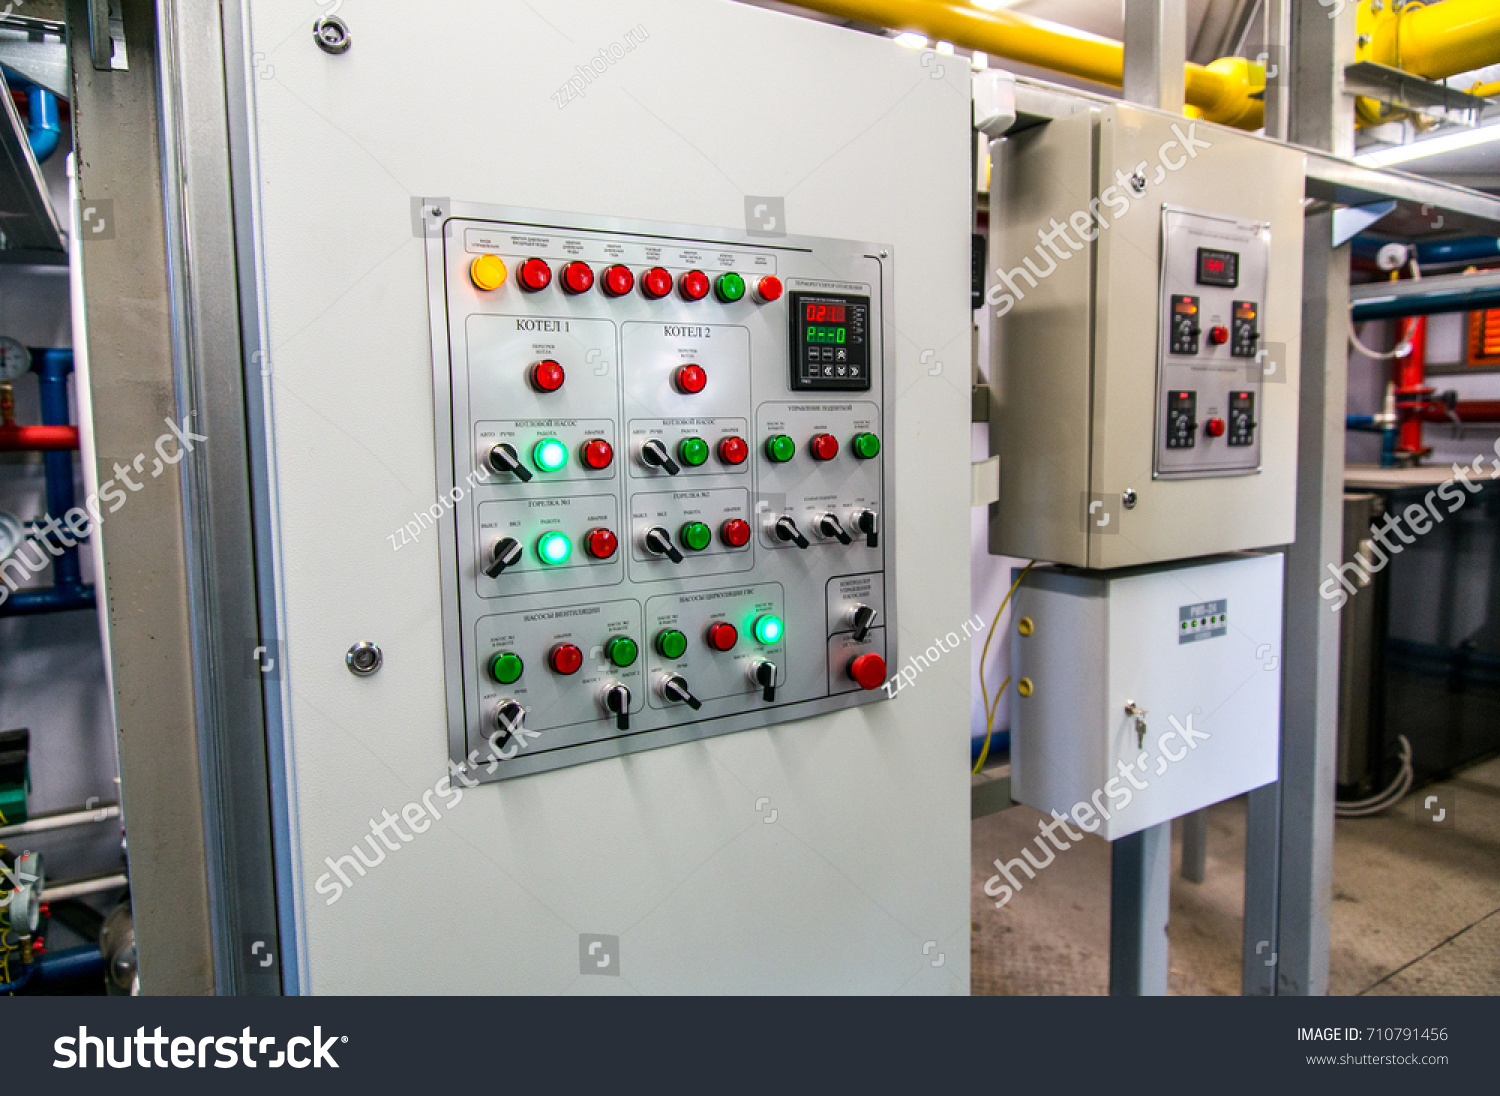 Electric Box On Gas Boiler House Stock Photo (Edit Now) 710791456 ...